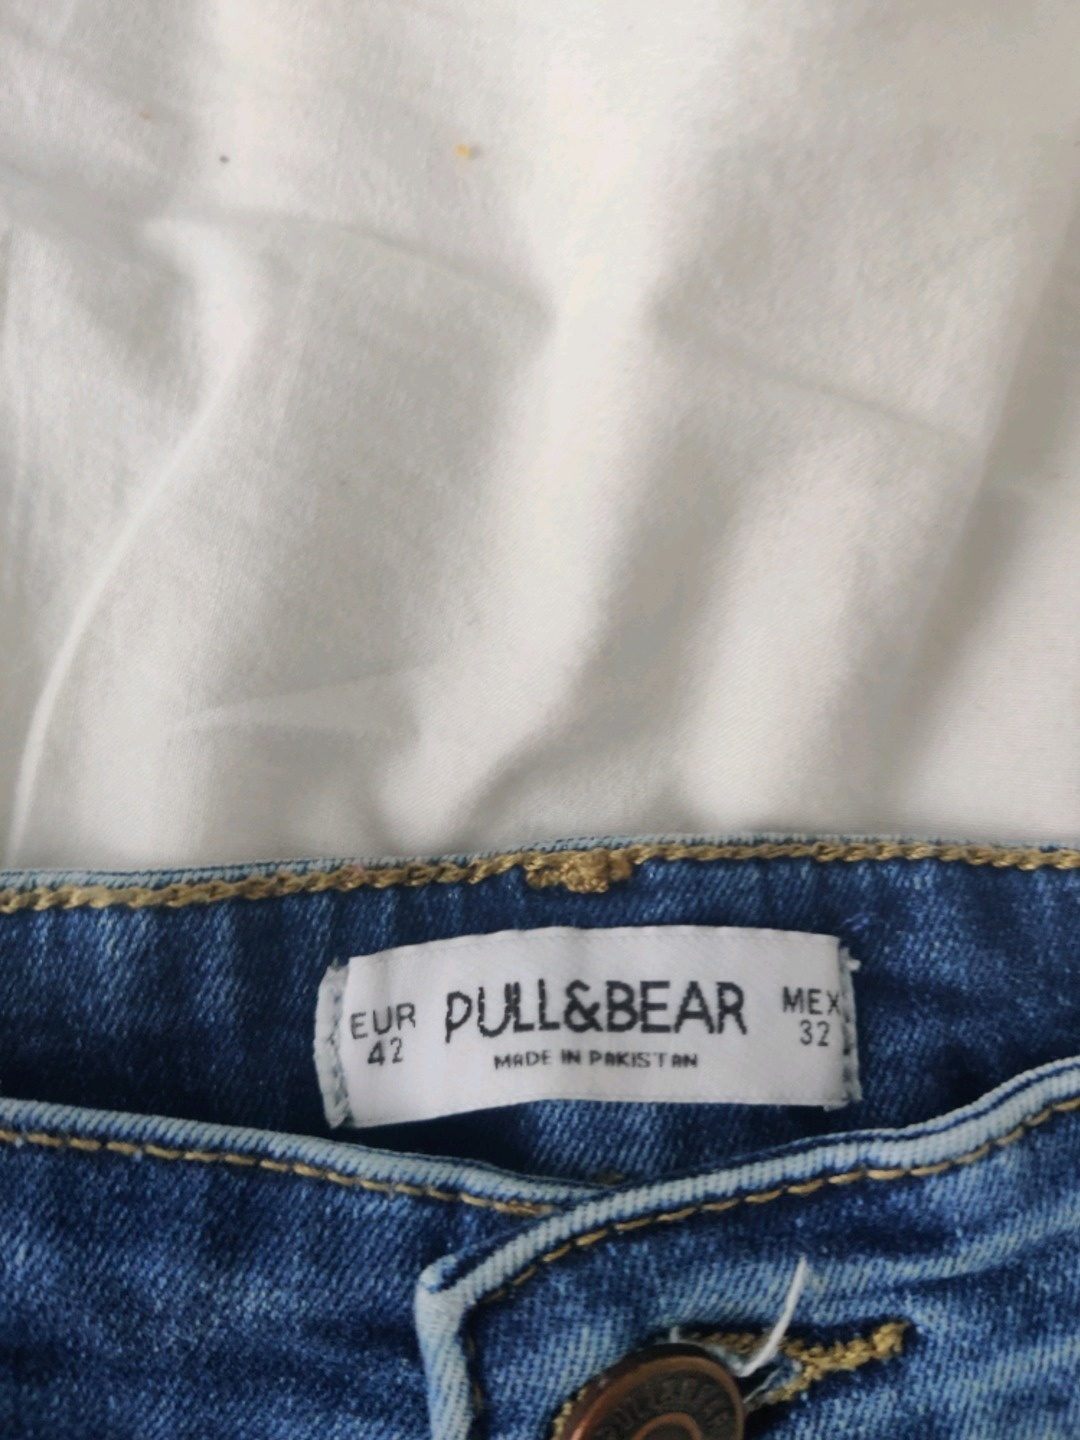 Women's trousers & jeans - PULL&BEAR photo 2